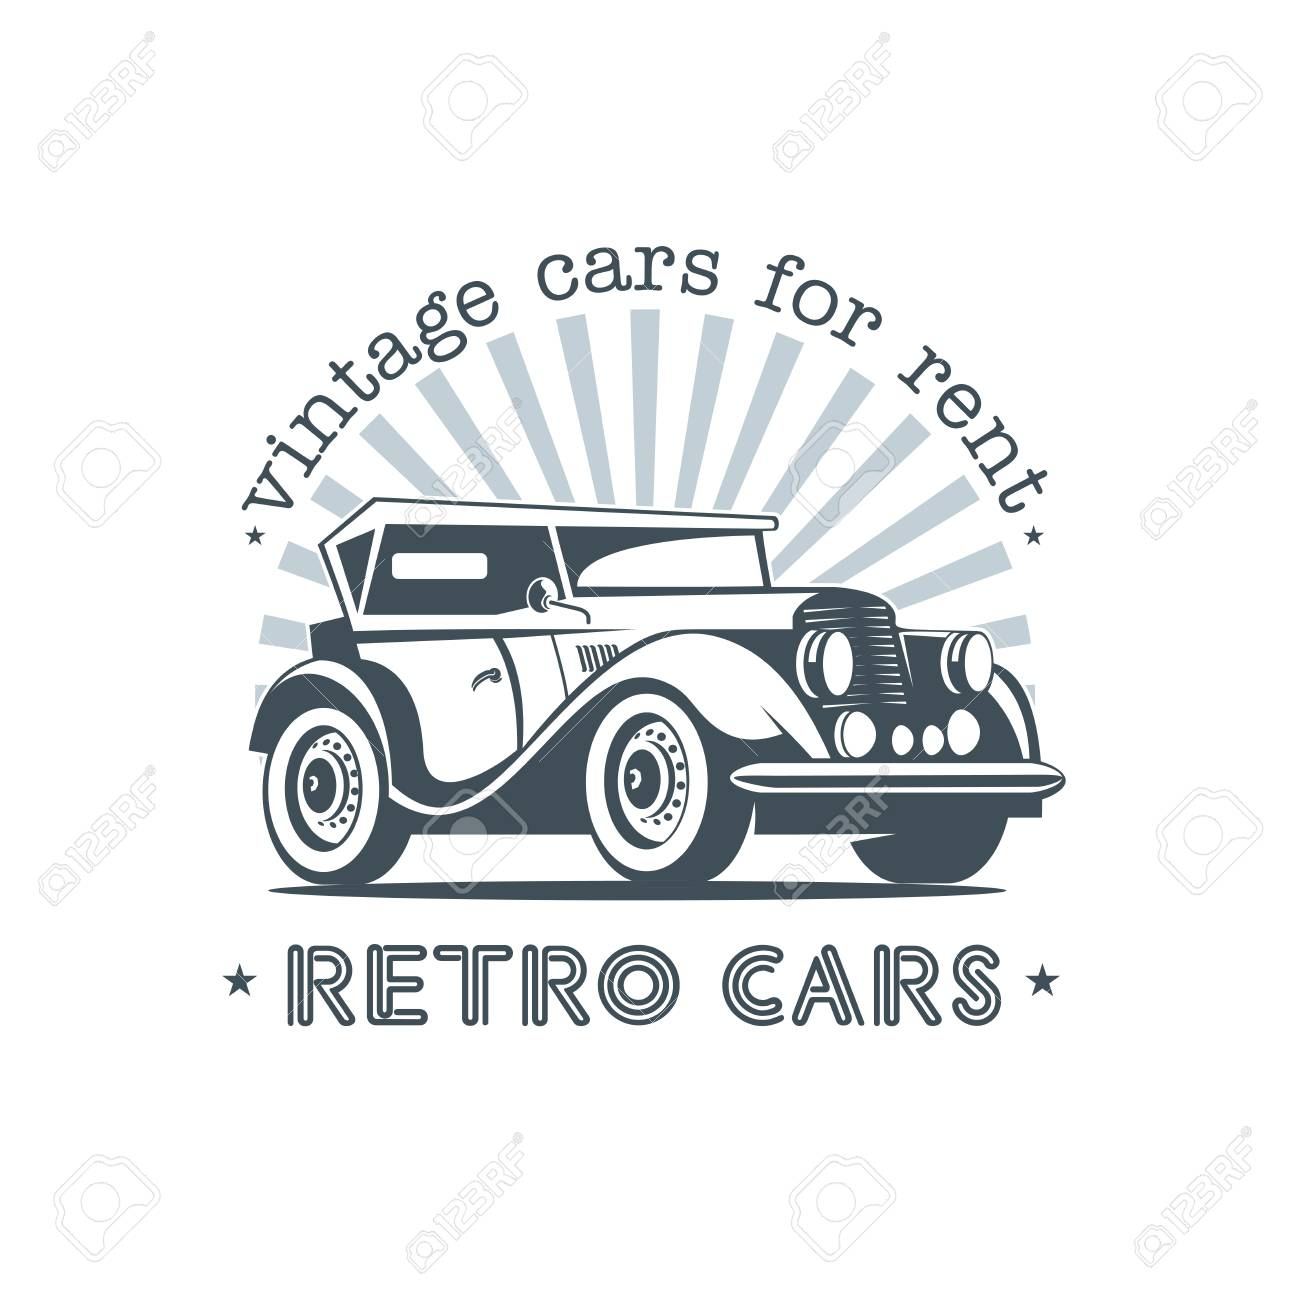 Retro Car Vintage Cars For Rent. Vector Logo In A Retro Style ...